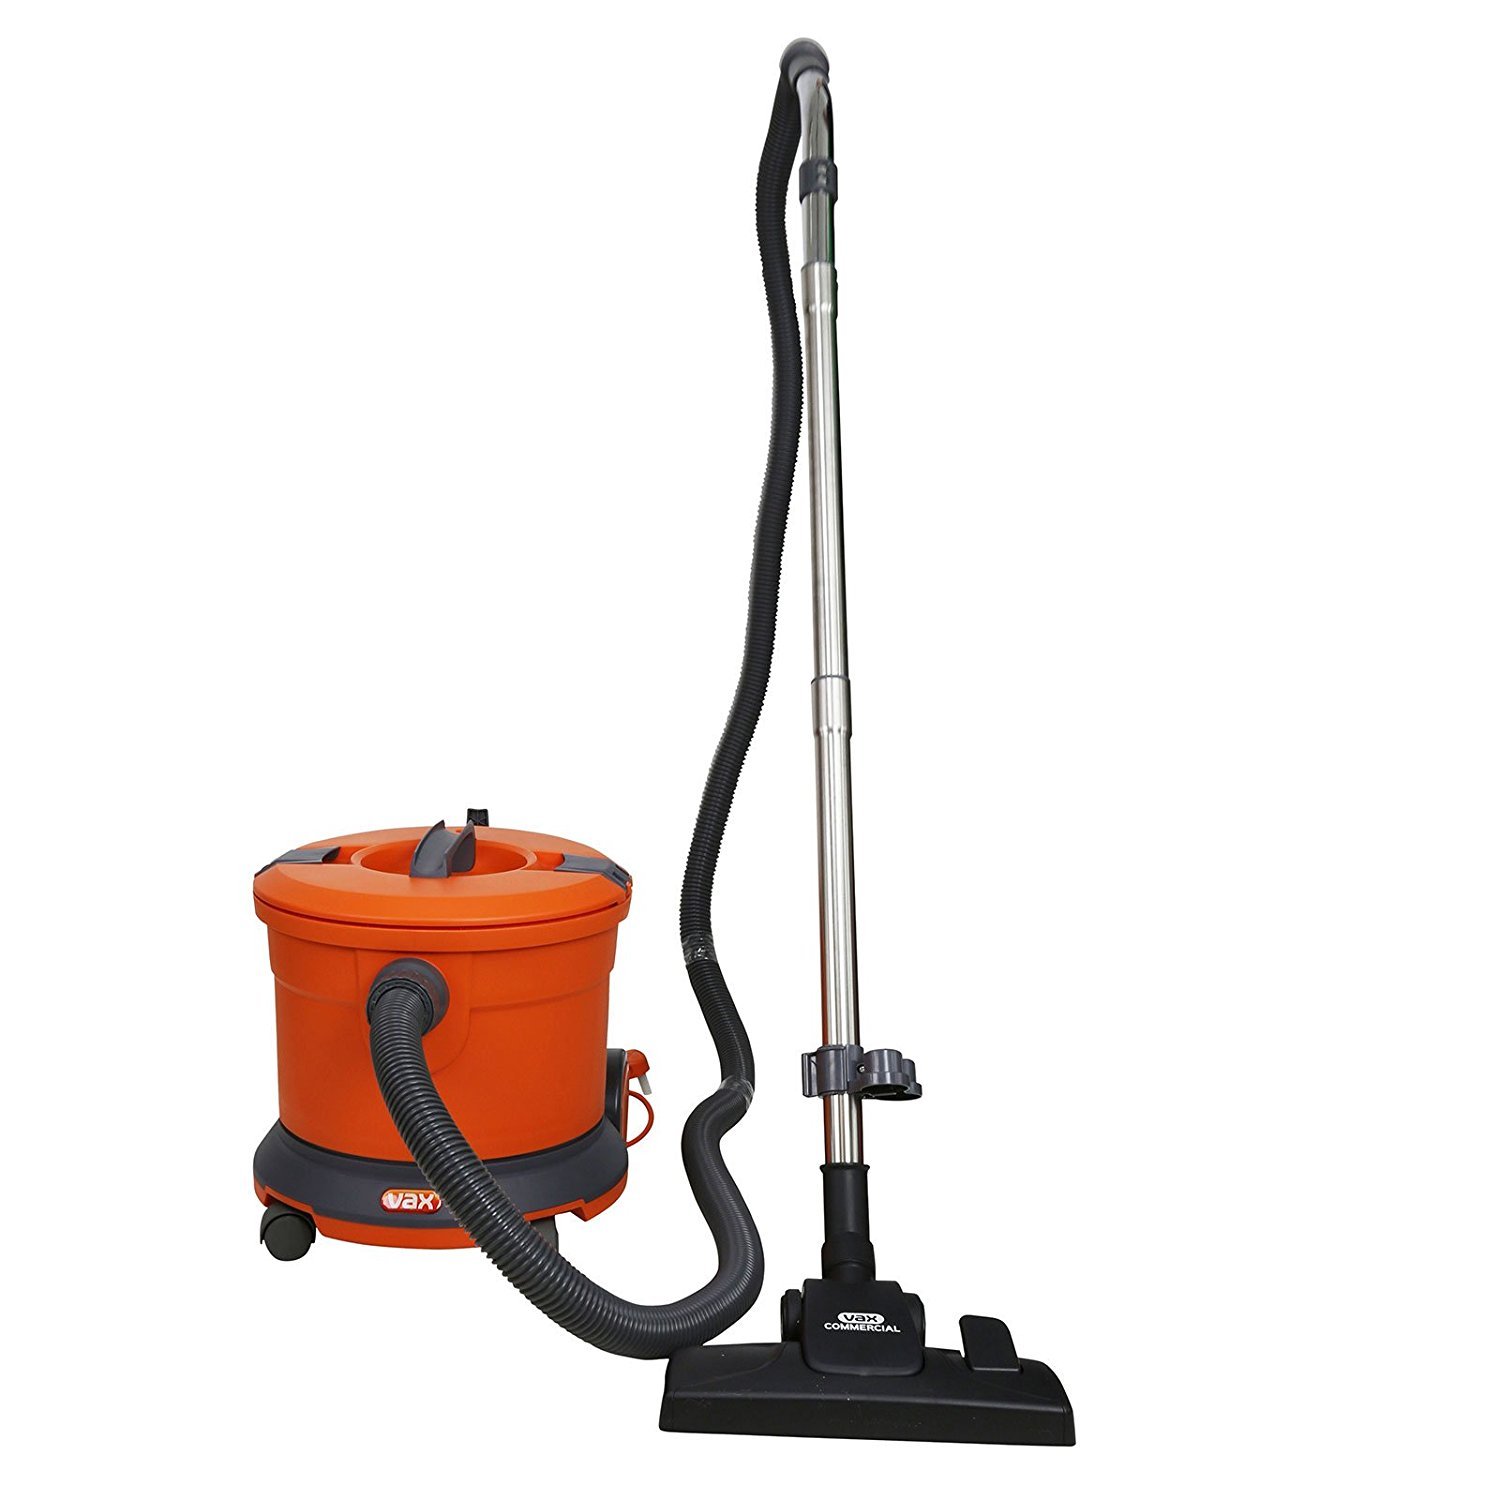 Vax Tub Commercial Vacuum Cleaner